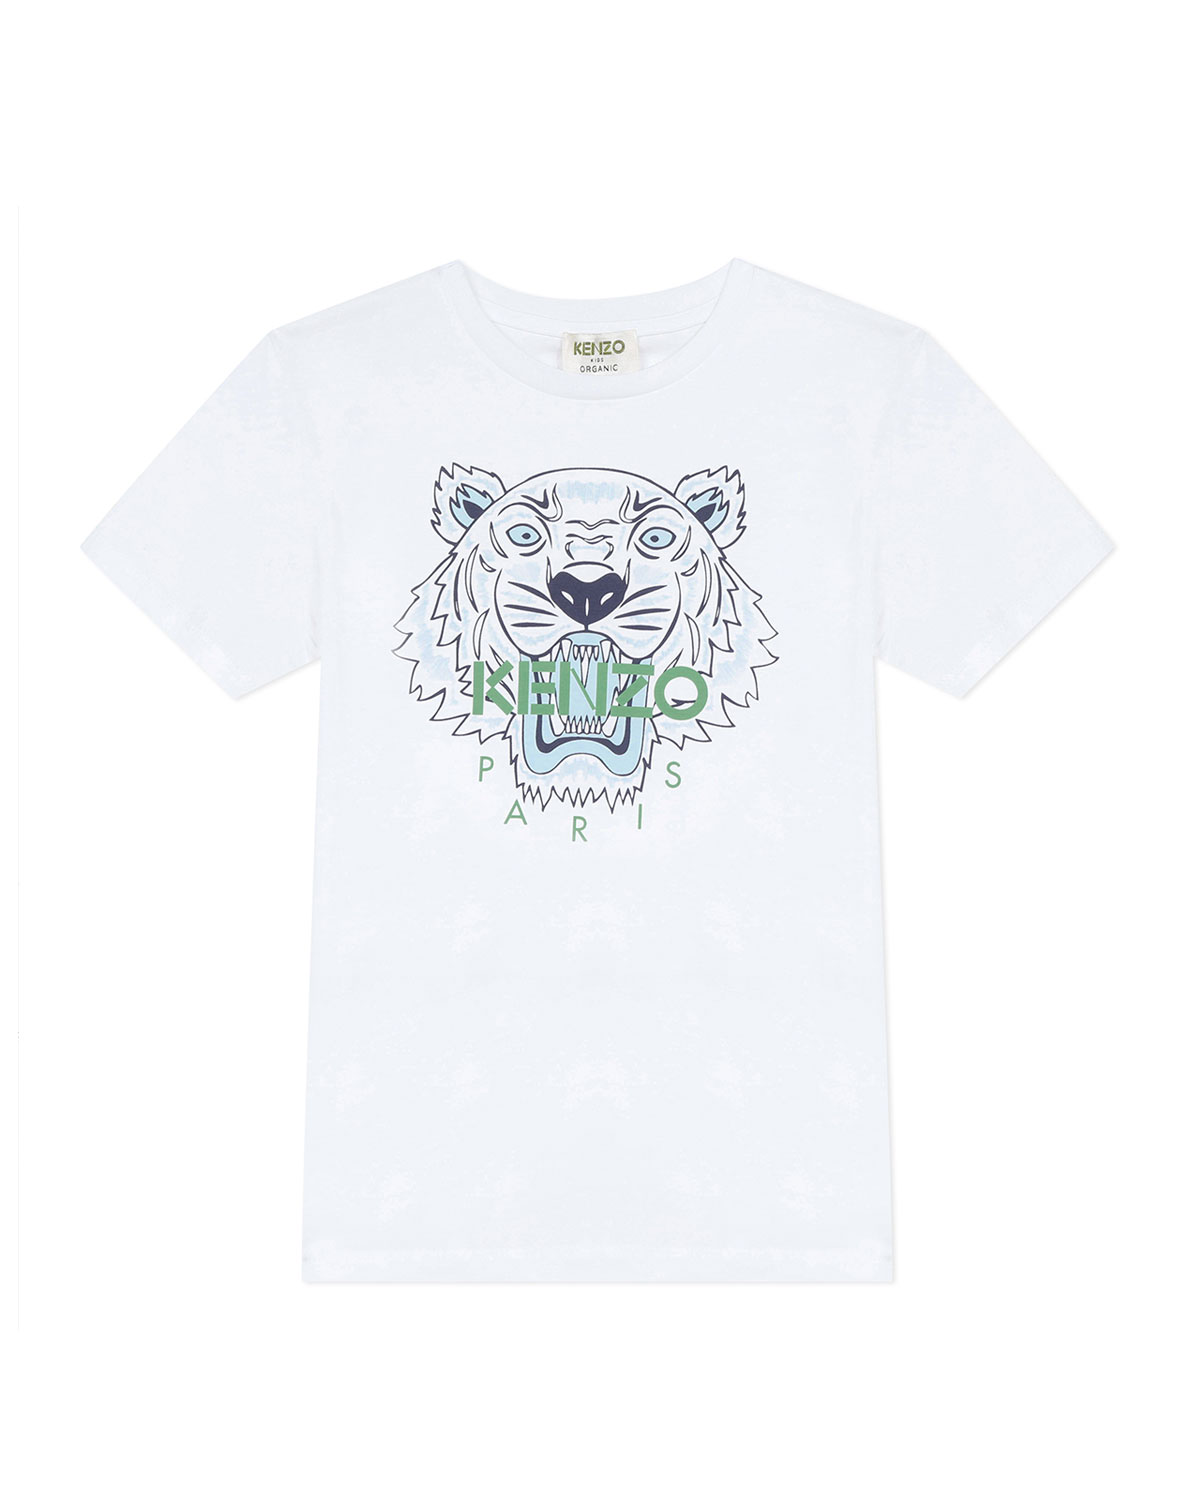 Kenzo BOY'S CLASSIC LOGO T-SHIRT WITH TIGER ICON